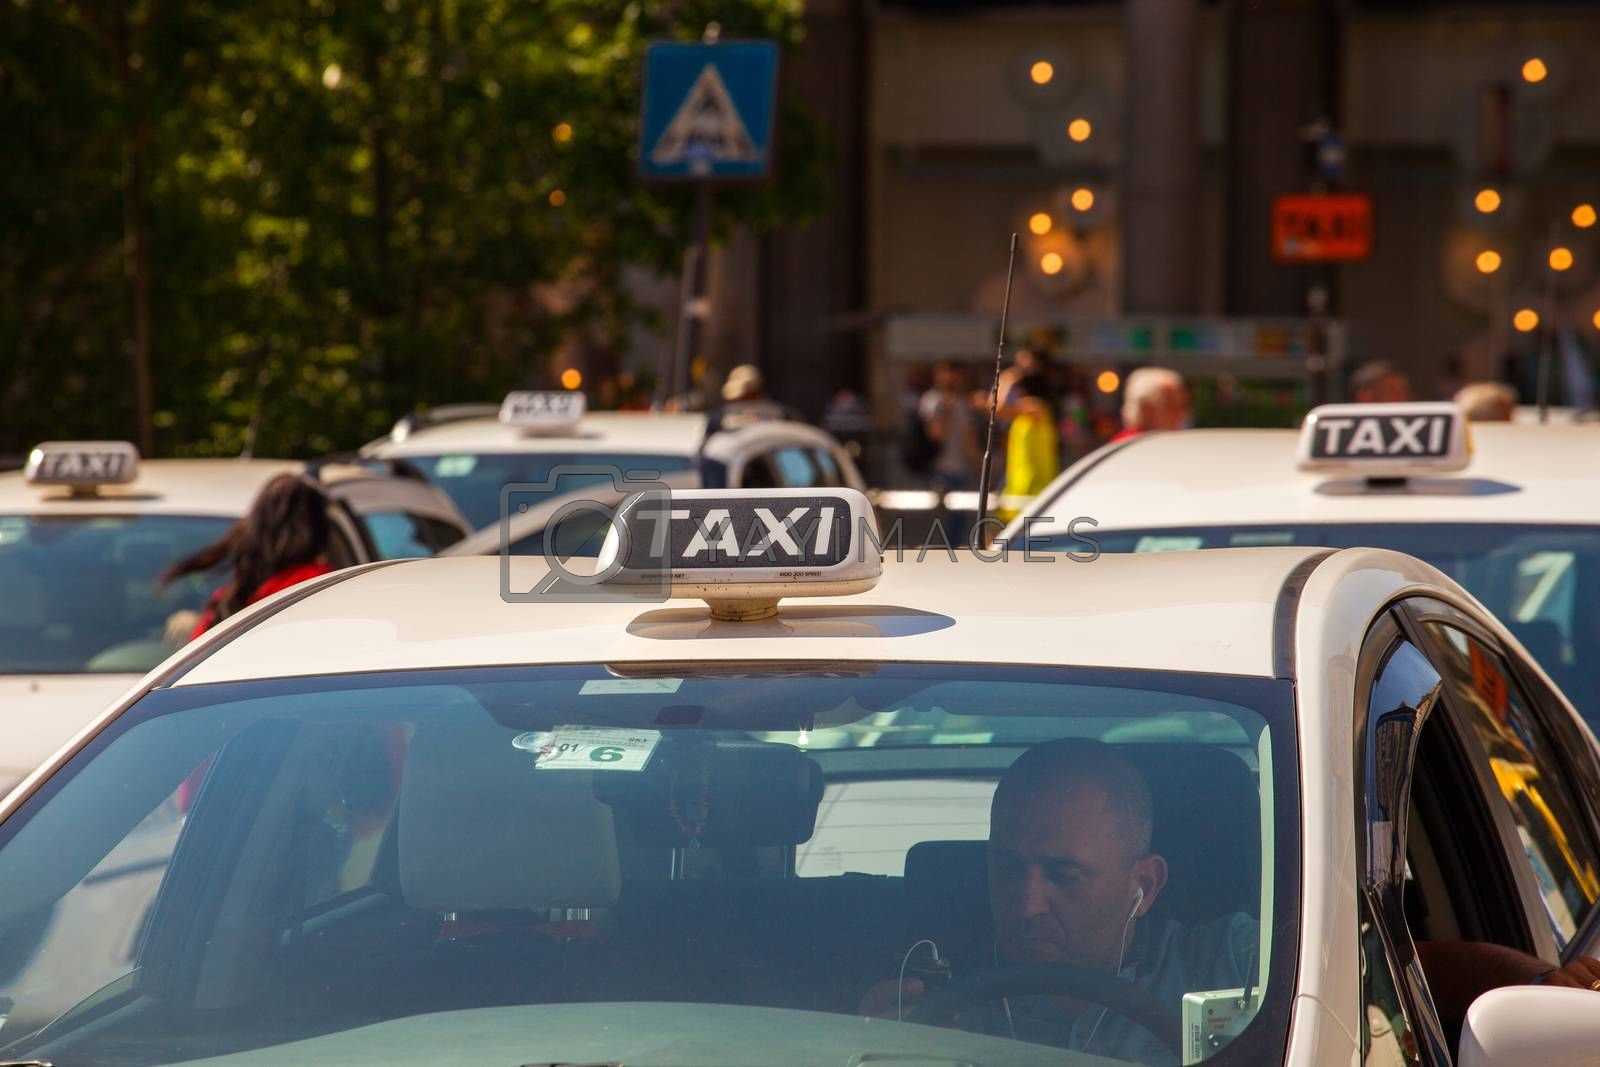 MILAN, ITALY - MAY, 15: Taxi parking in Milan on May 15, 2015